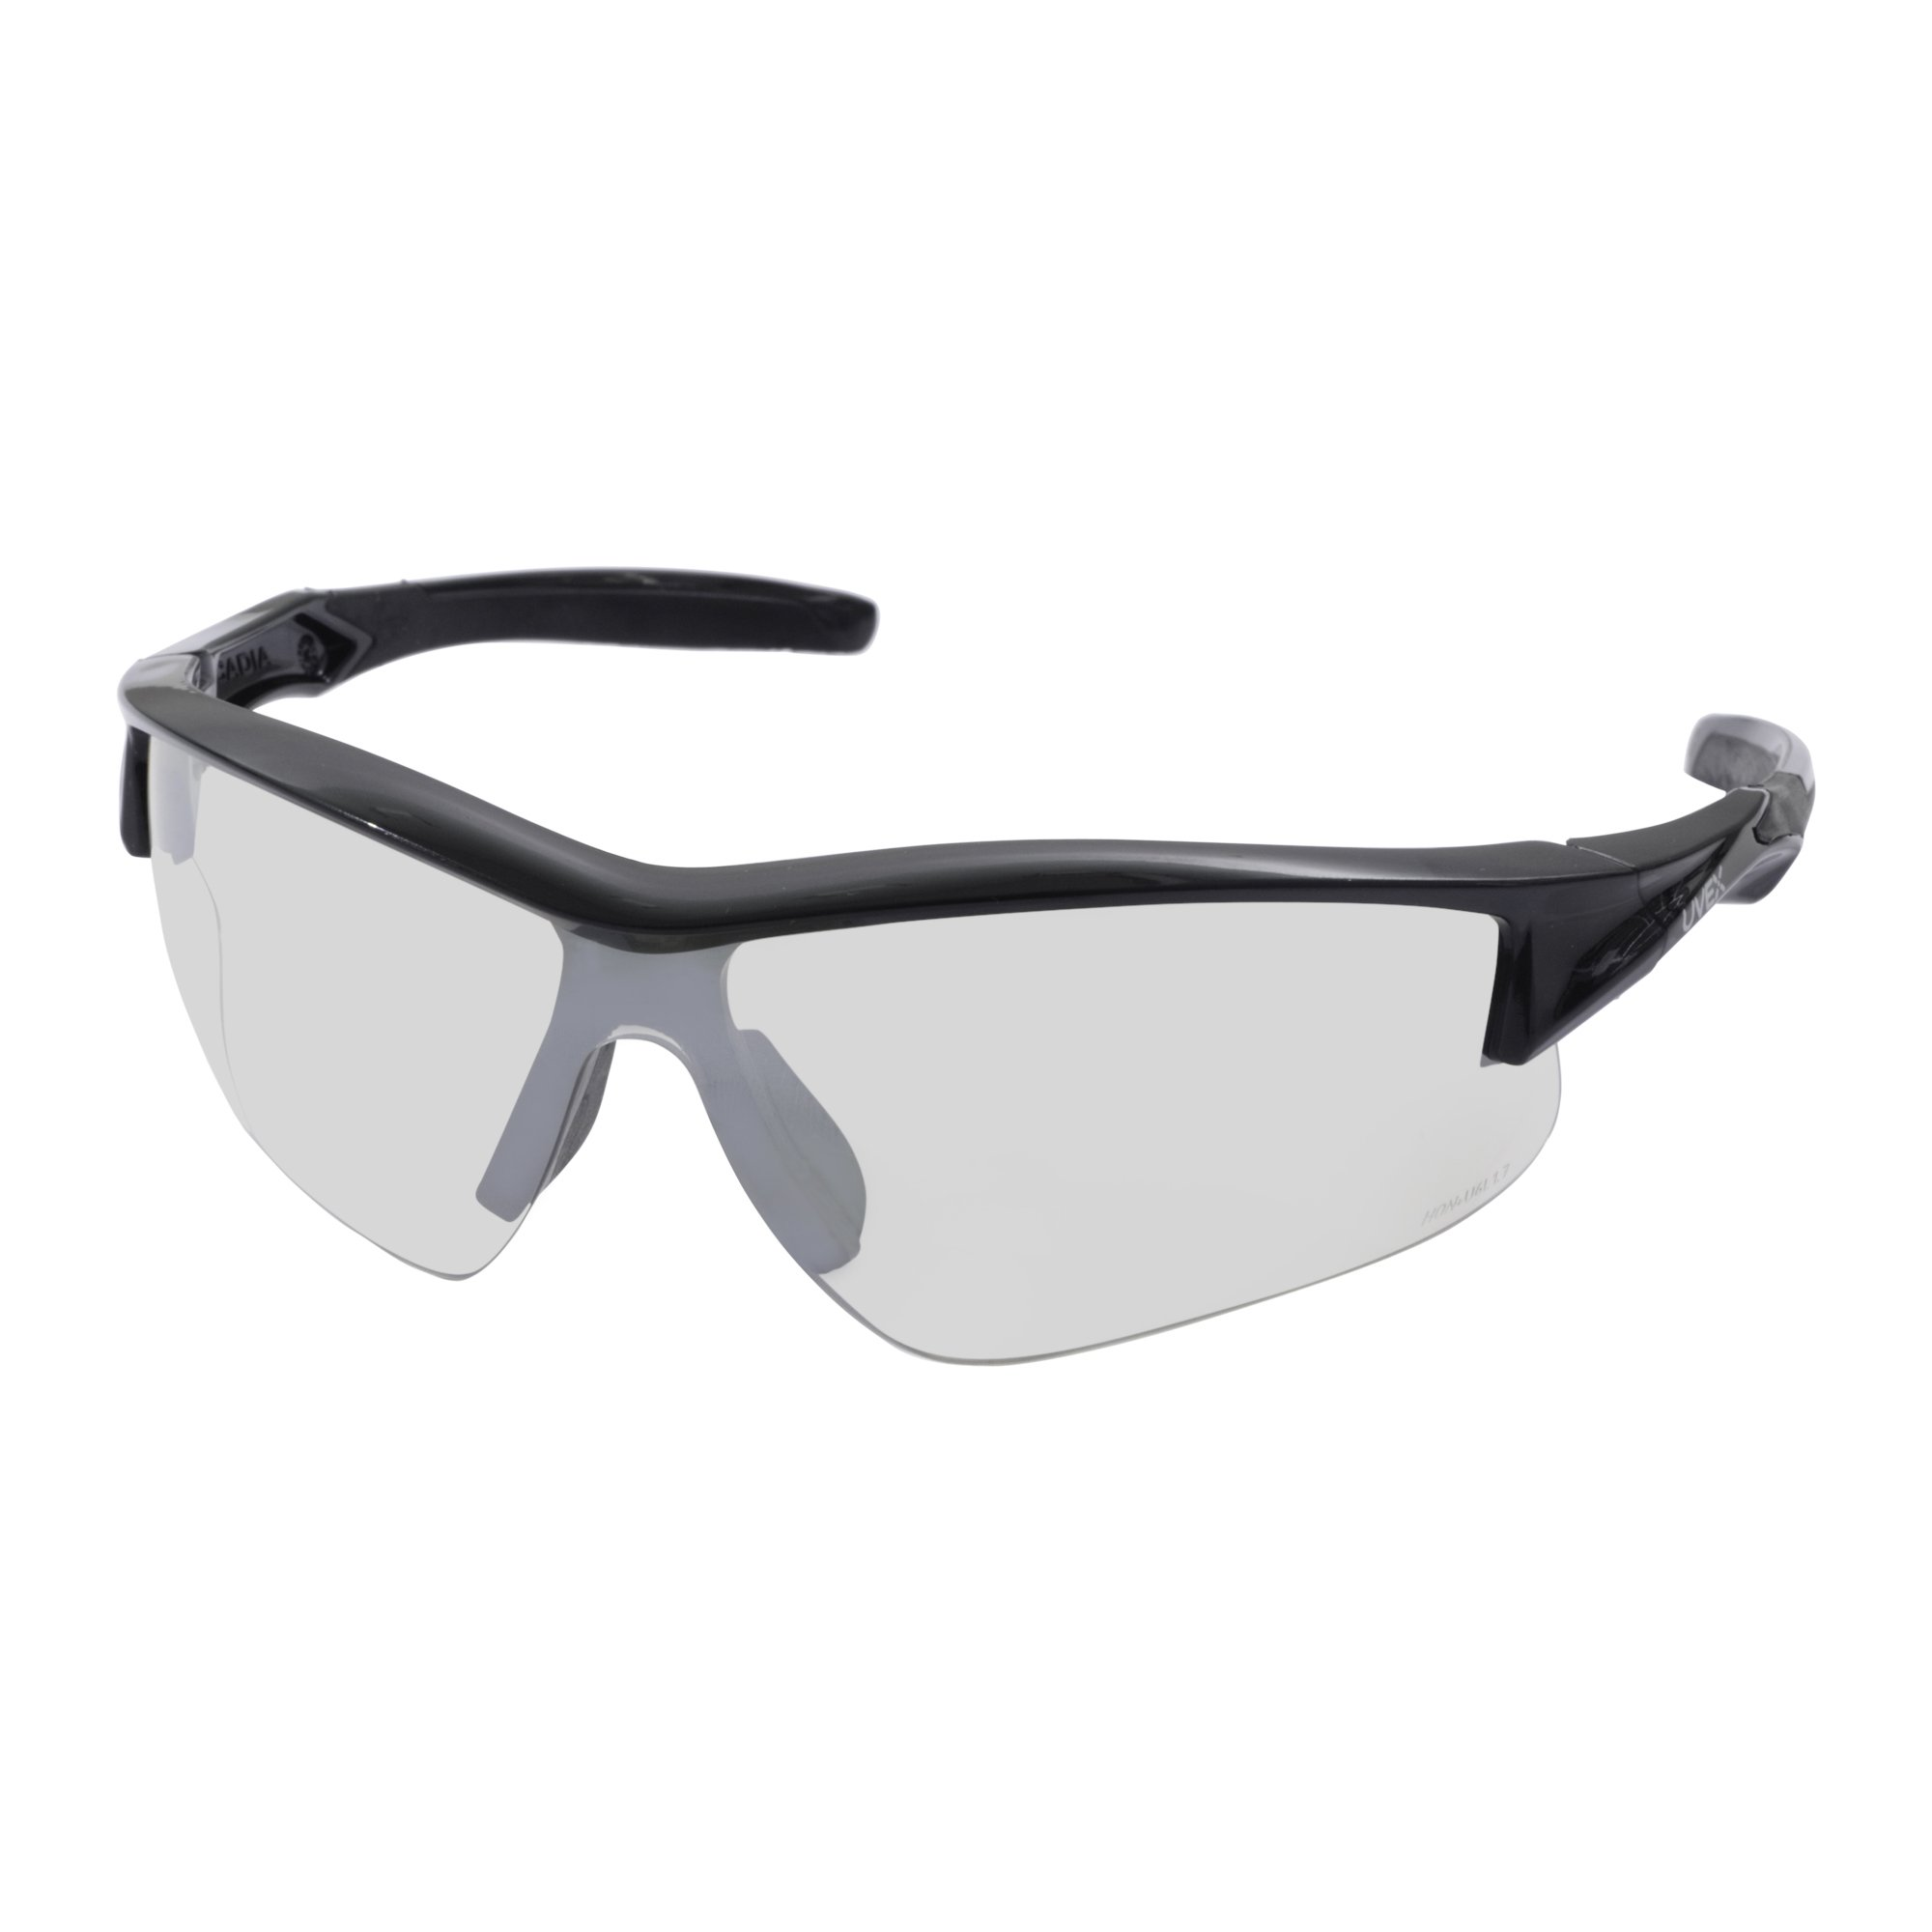 Howard Leight by Honeywell Uvex Acadia Anti-Glare Shooting Glasses with Hardcoat Lens Coating, SCT-Reflect 50 Lens (R-02216)